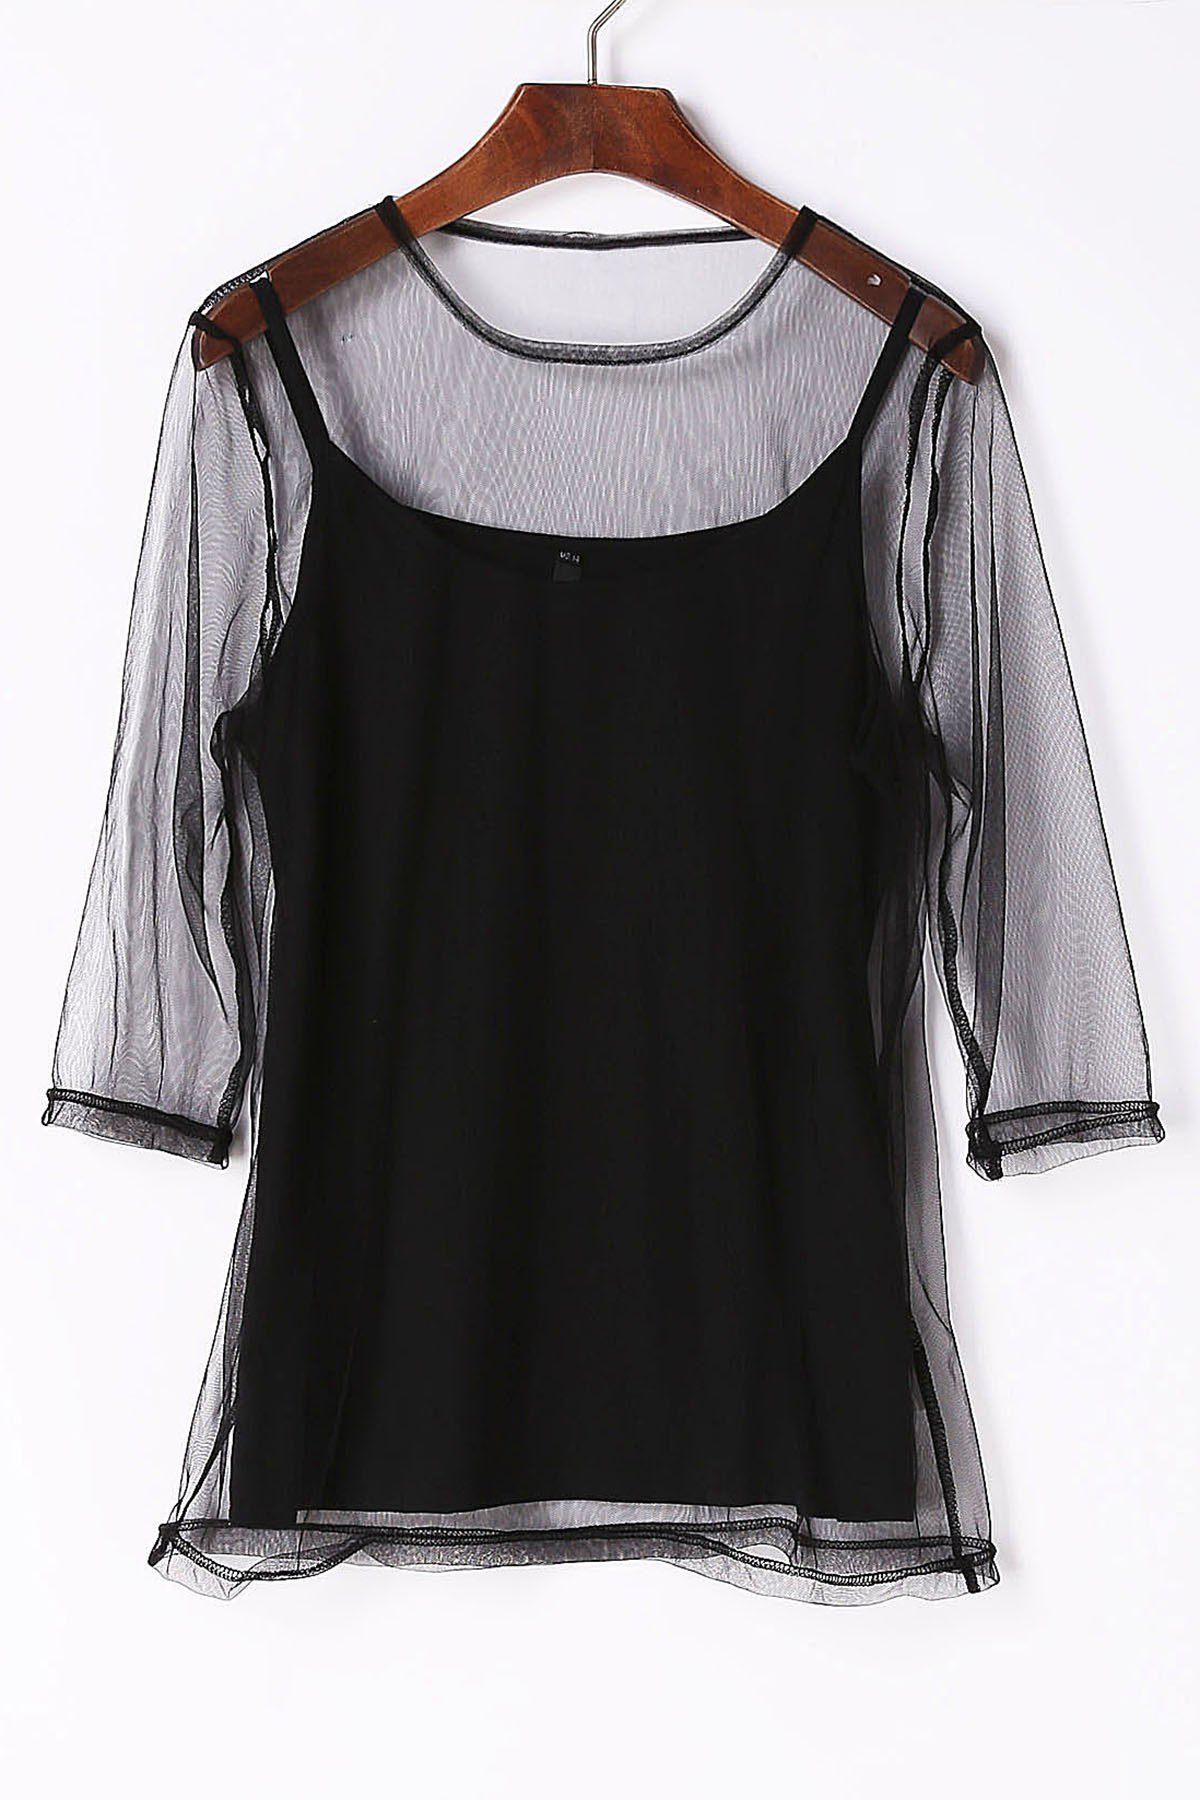 Affordable Charming Round Neck See-Through 3/4 Sleeve T-Shirt For Women